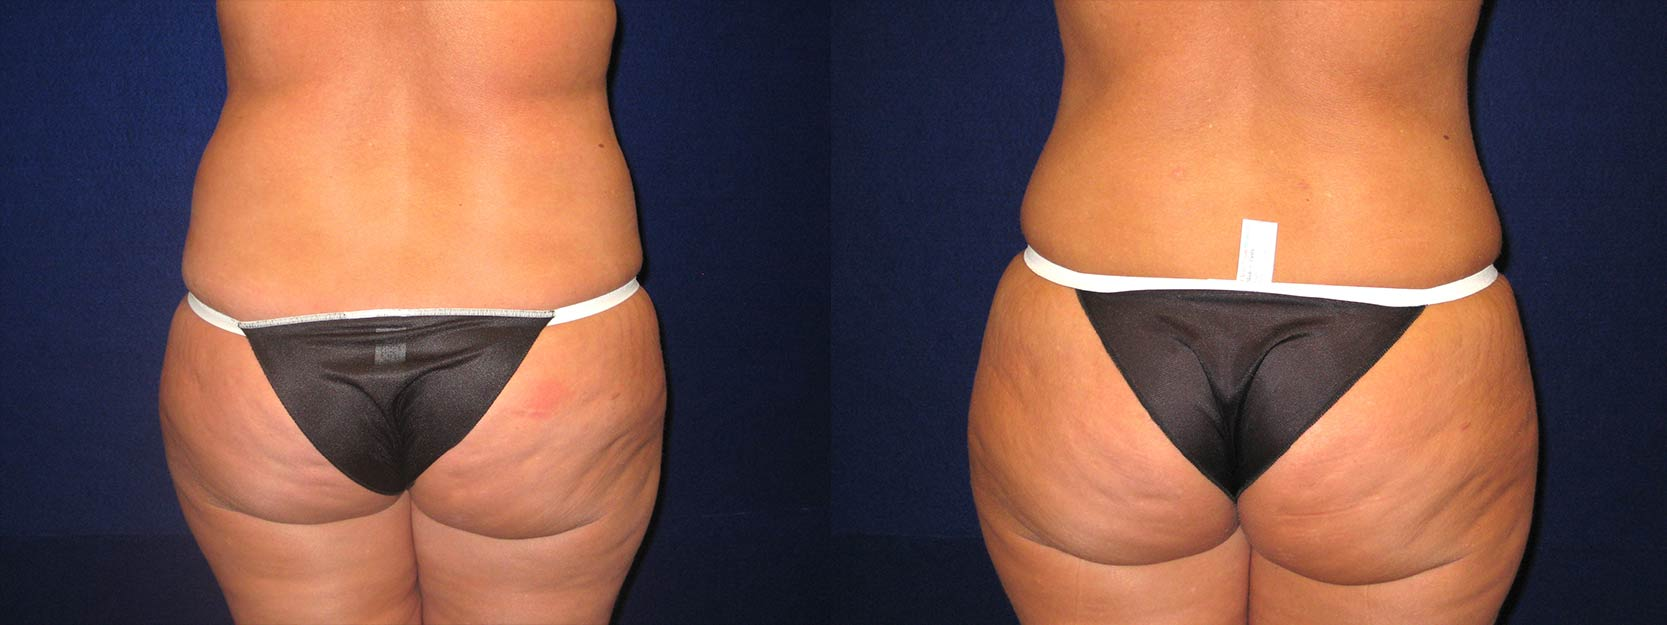 Back View - Tummy Tuck After Pregnancy